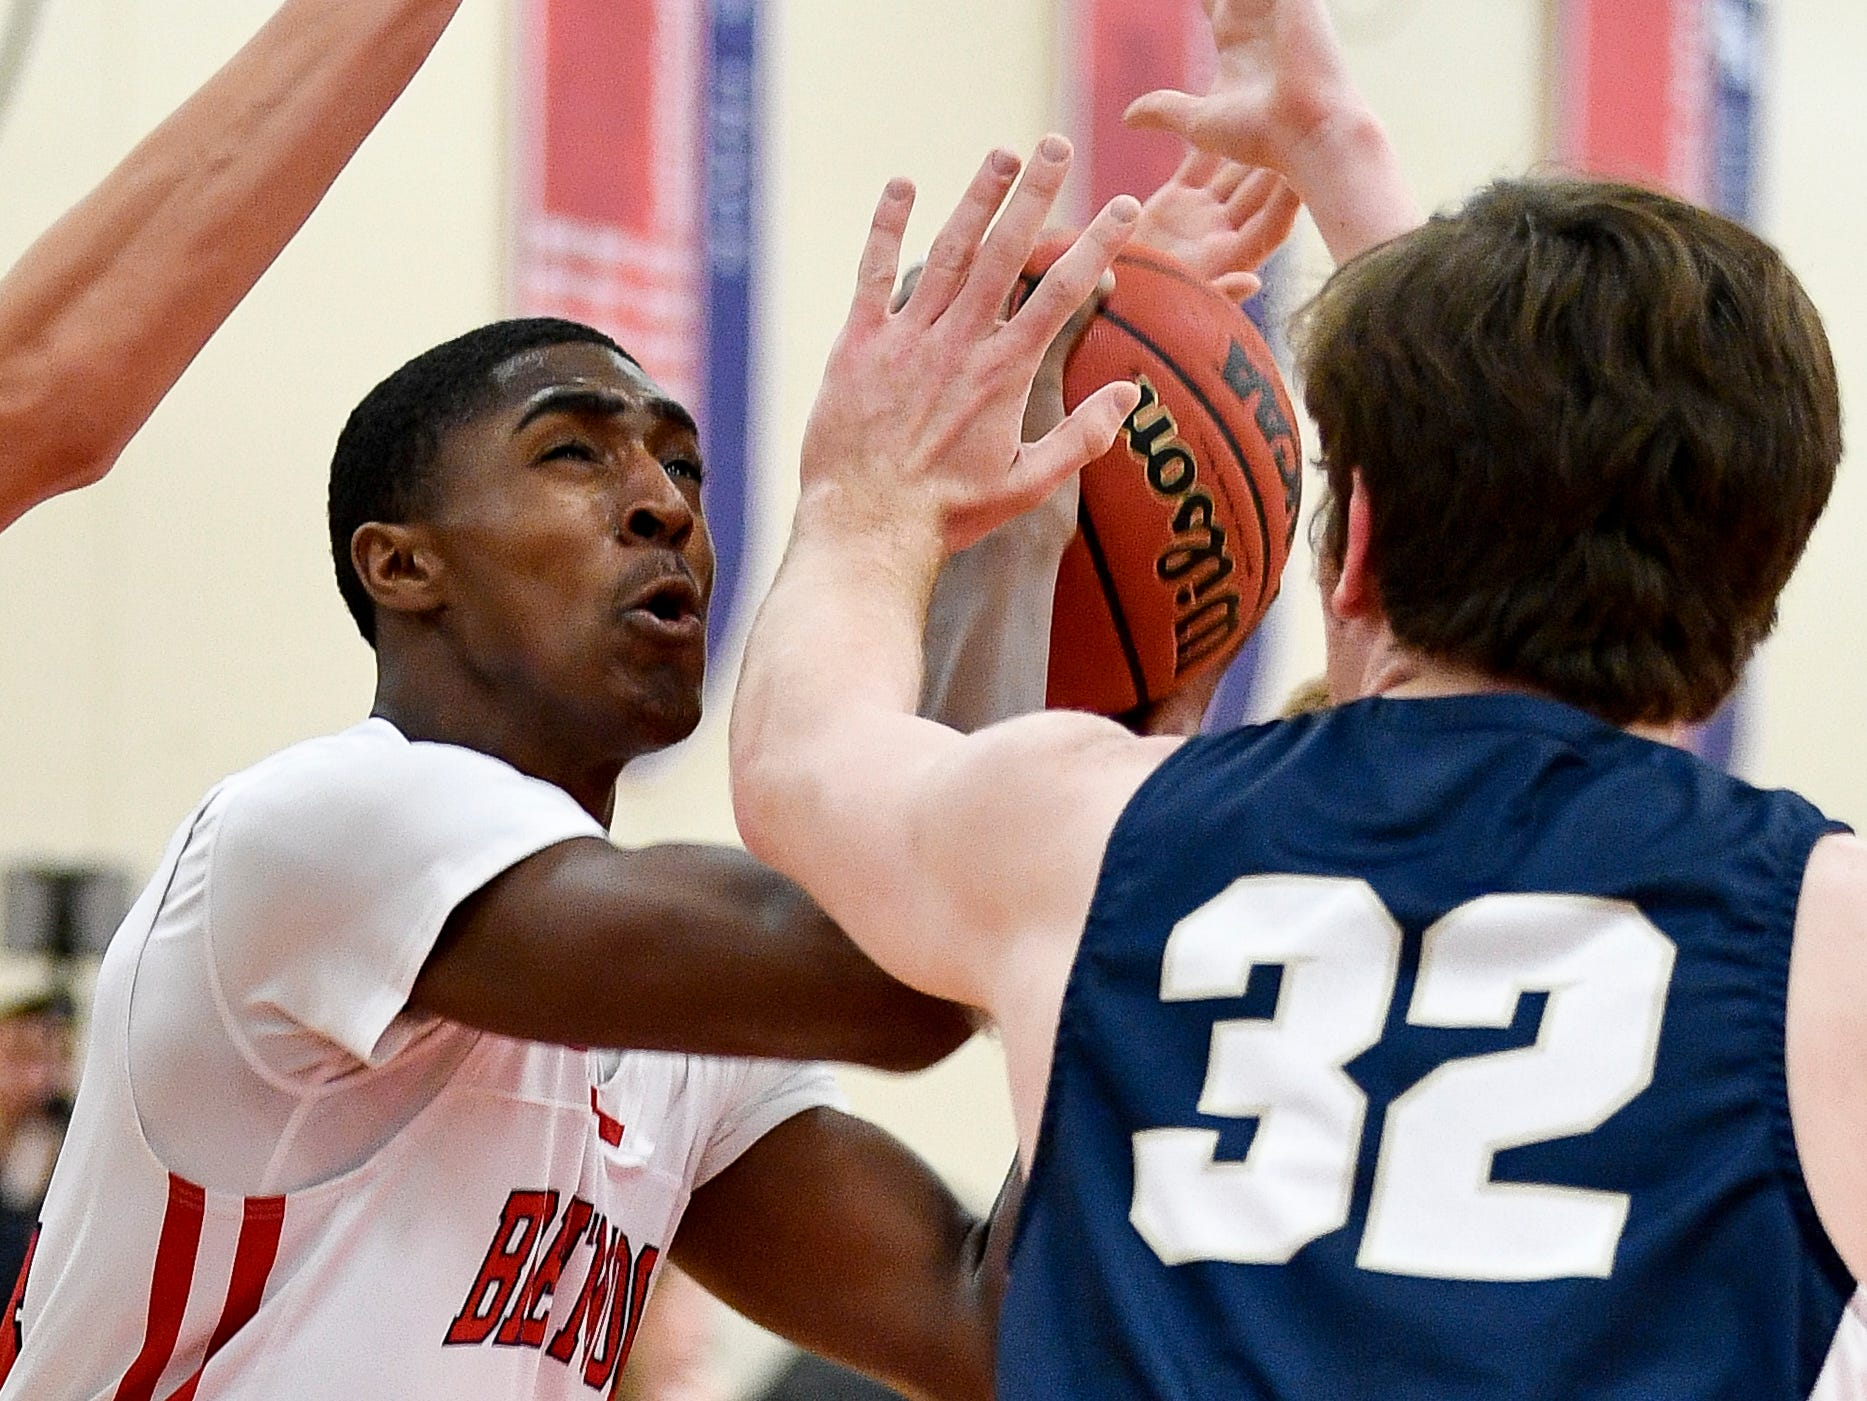 Brentwood Academy's Randy Brady (34) looks for an opening pasr Pope John Paul II's Judson Murray (32) during the first half at Brentwood Academy in Brentwood, Tenn., Friday, Jan. 4, 2019.